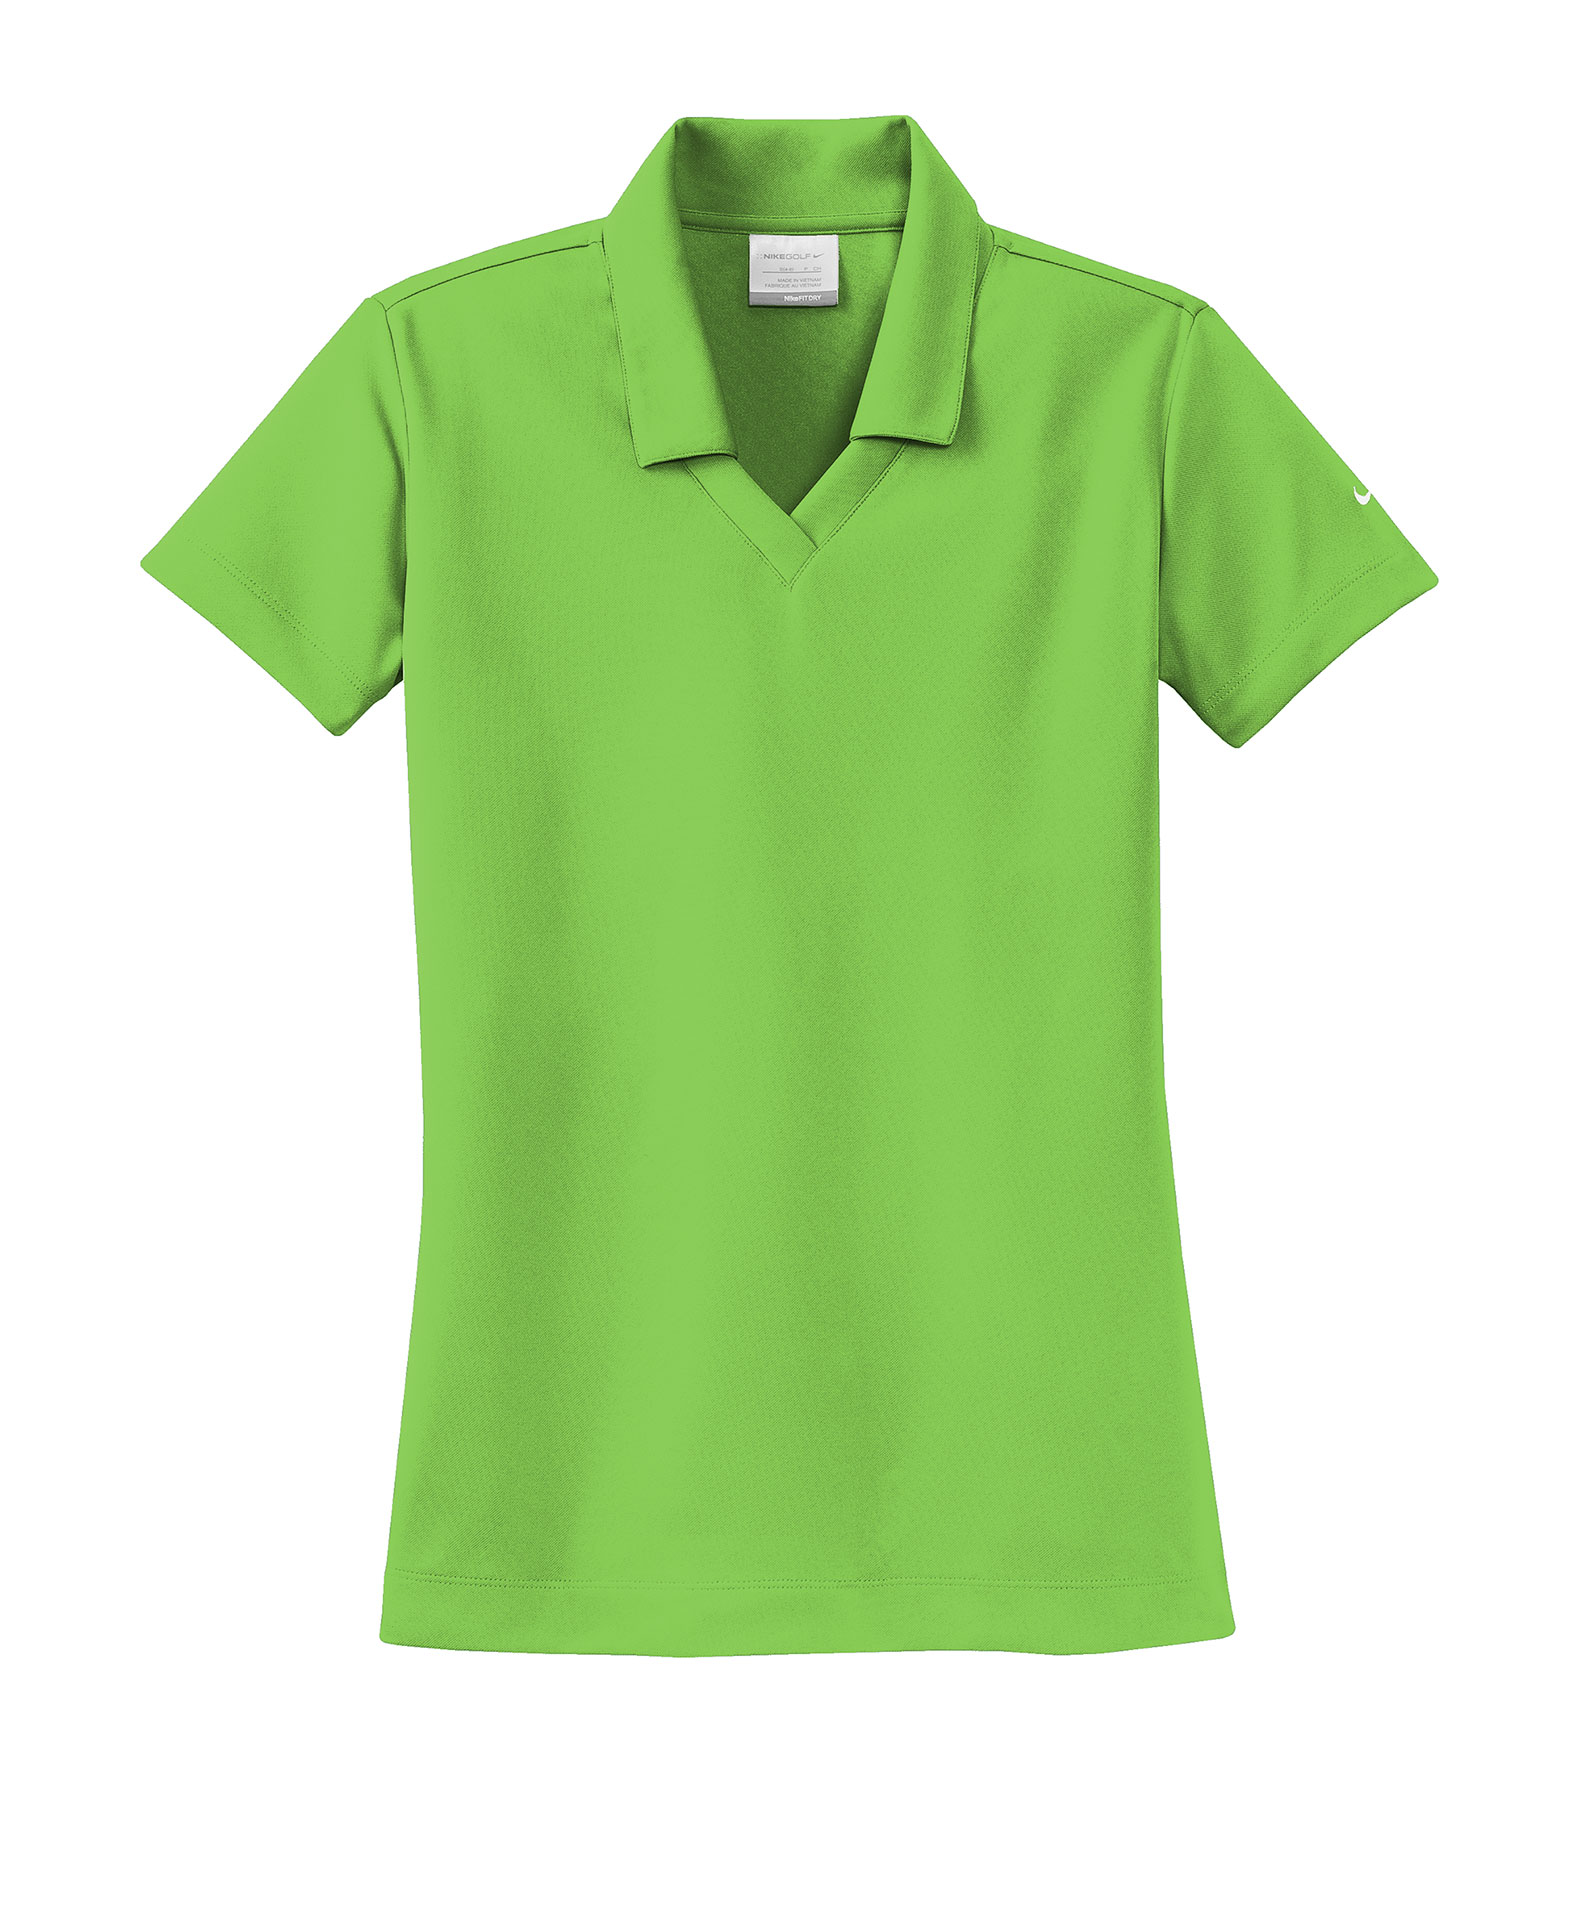 e87811b2eec Custom NIKE GOLF - Ladies Dri-FIT Micro Pique Sport Shirt